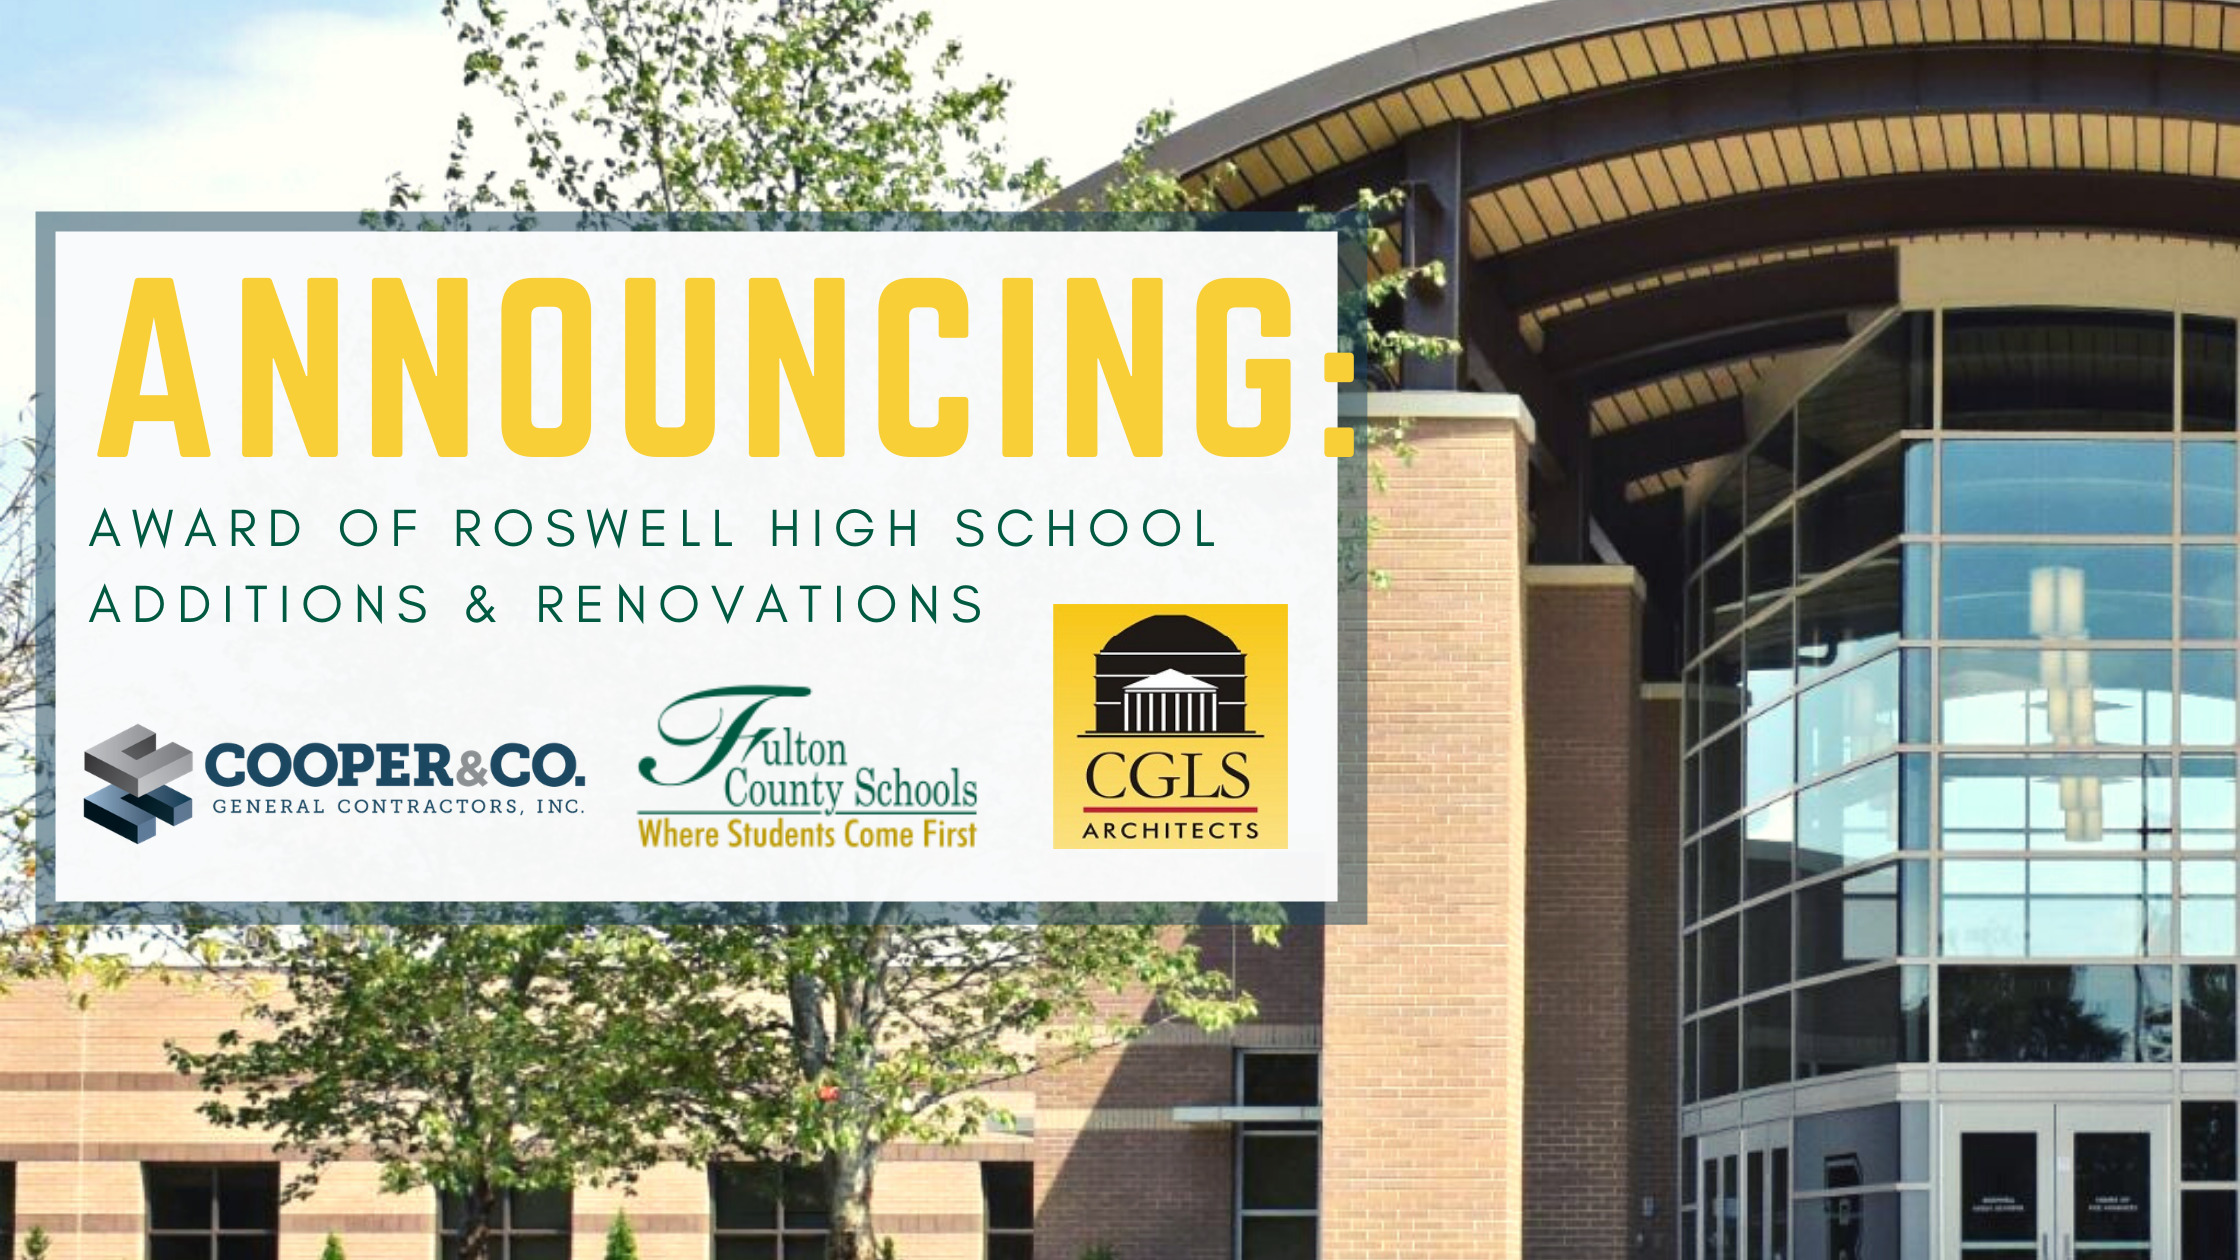 Announcing Roswell High School Renovations   Cooper & Company General Contractors